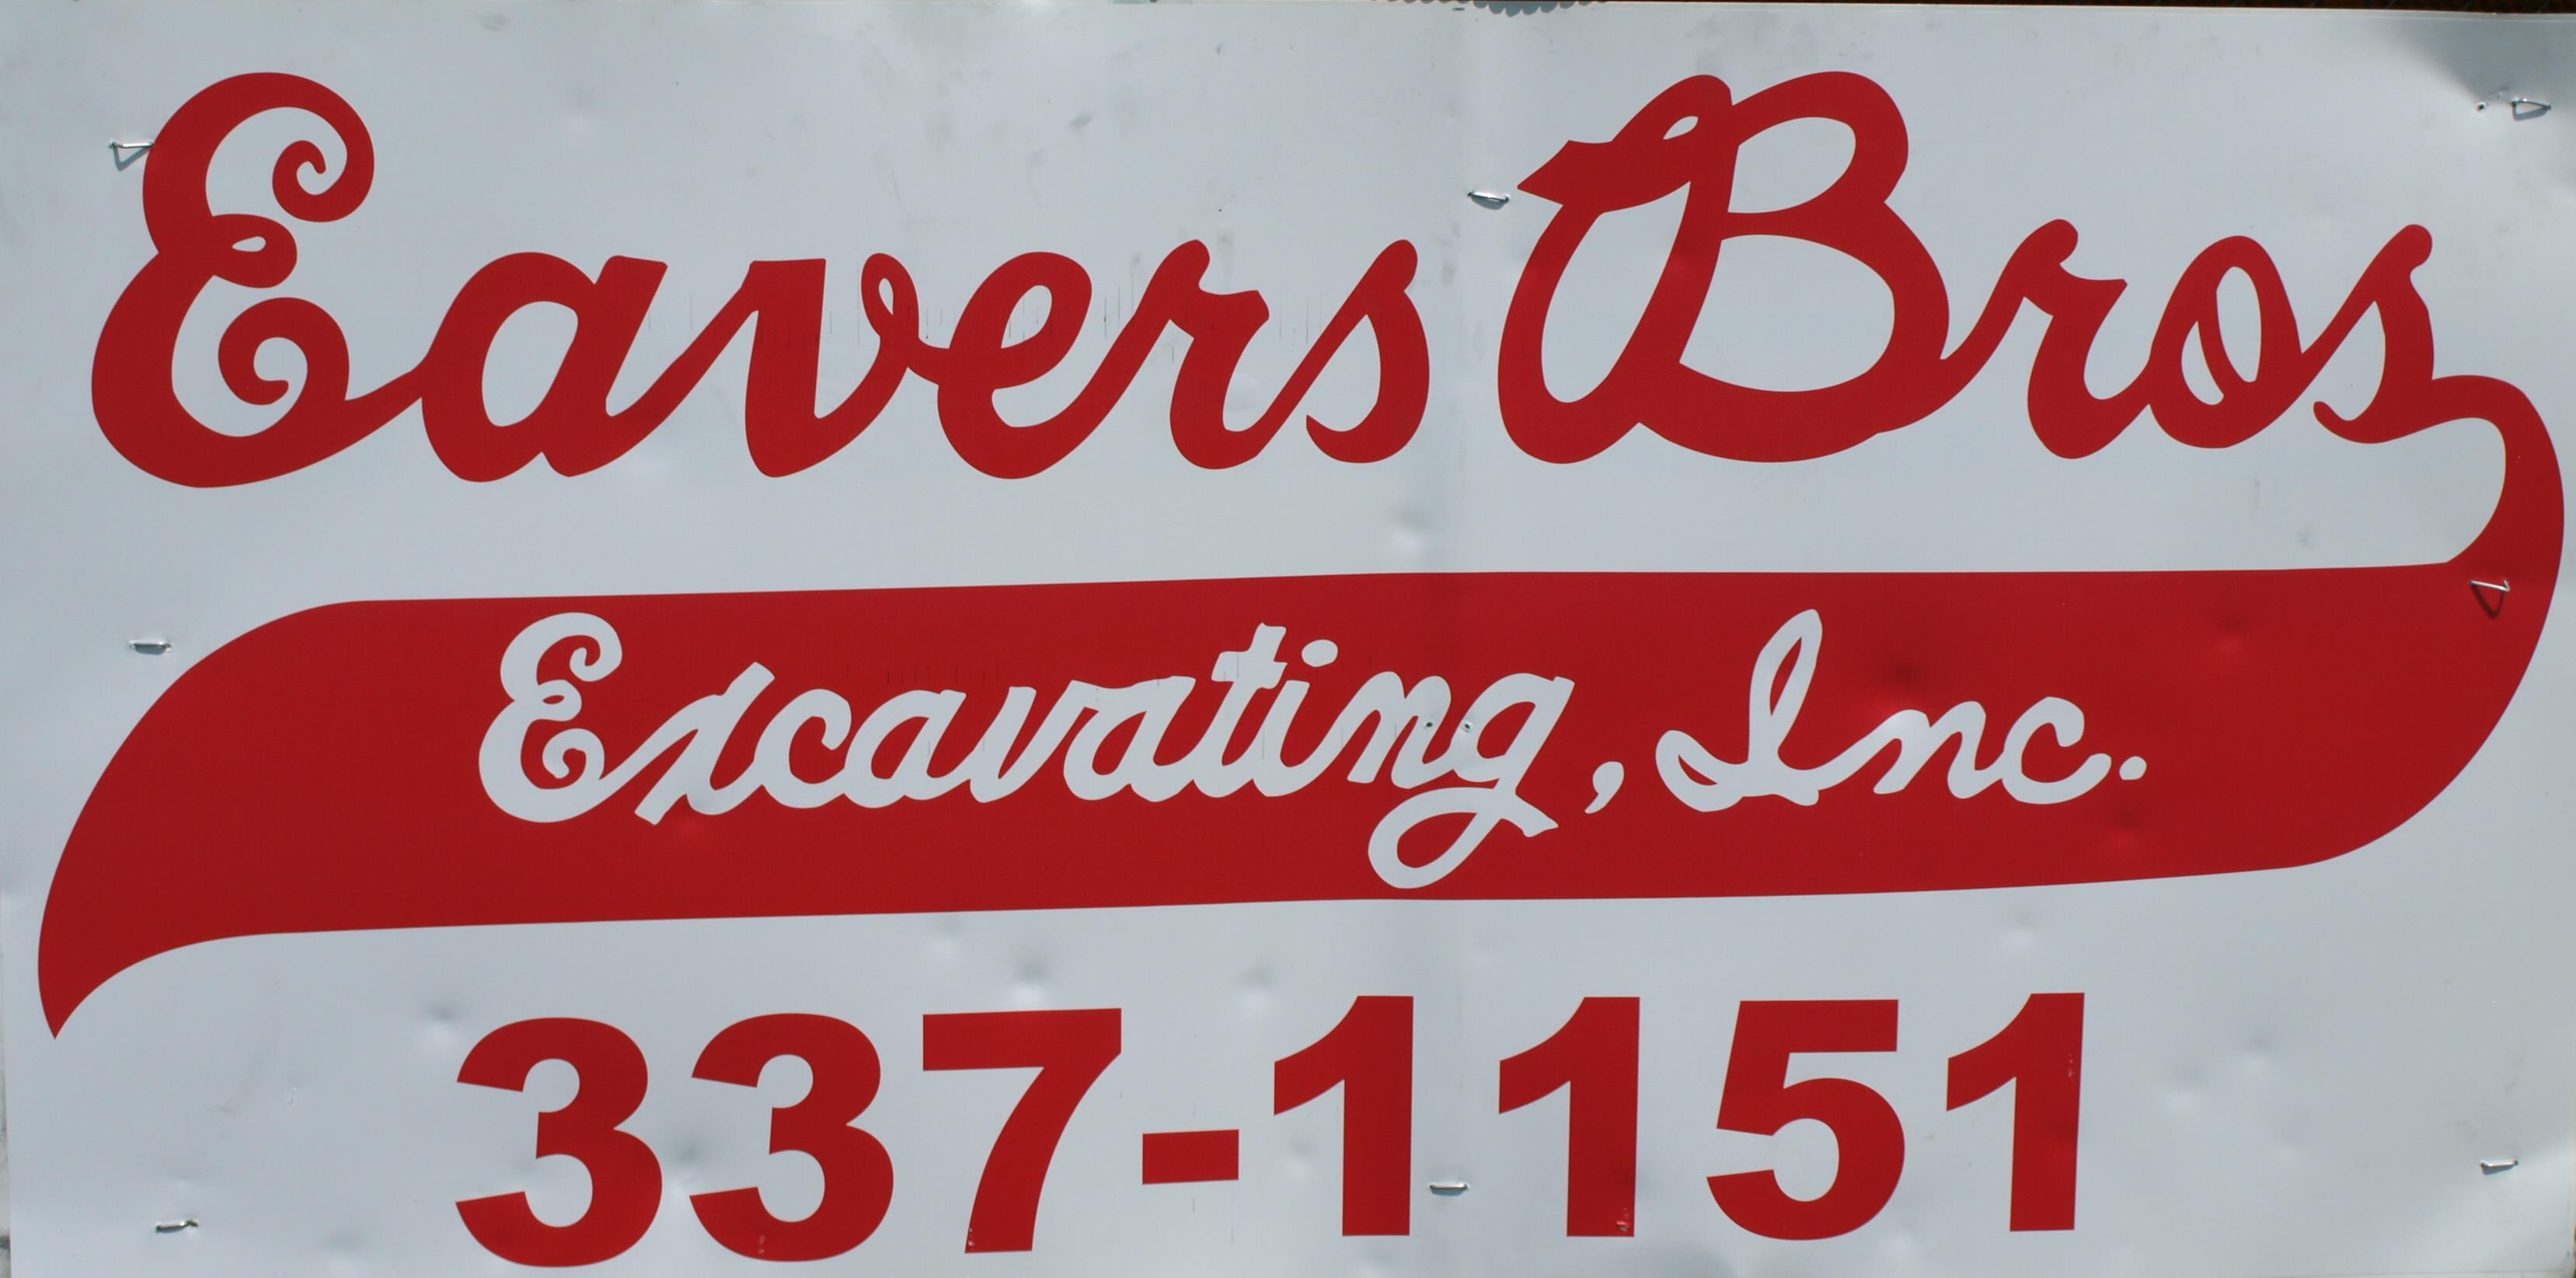 Eavers Bros. Excavating Inc.